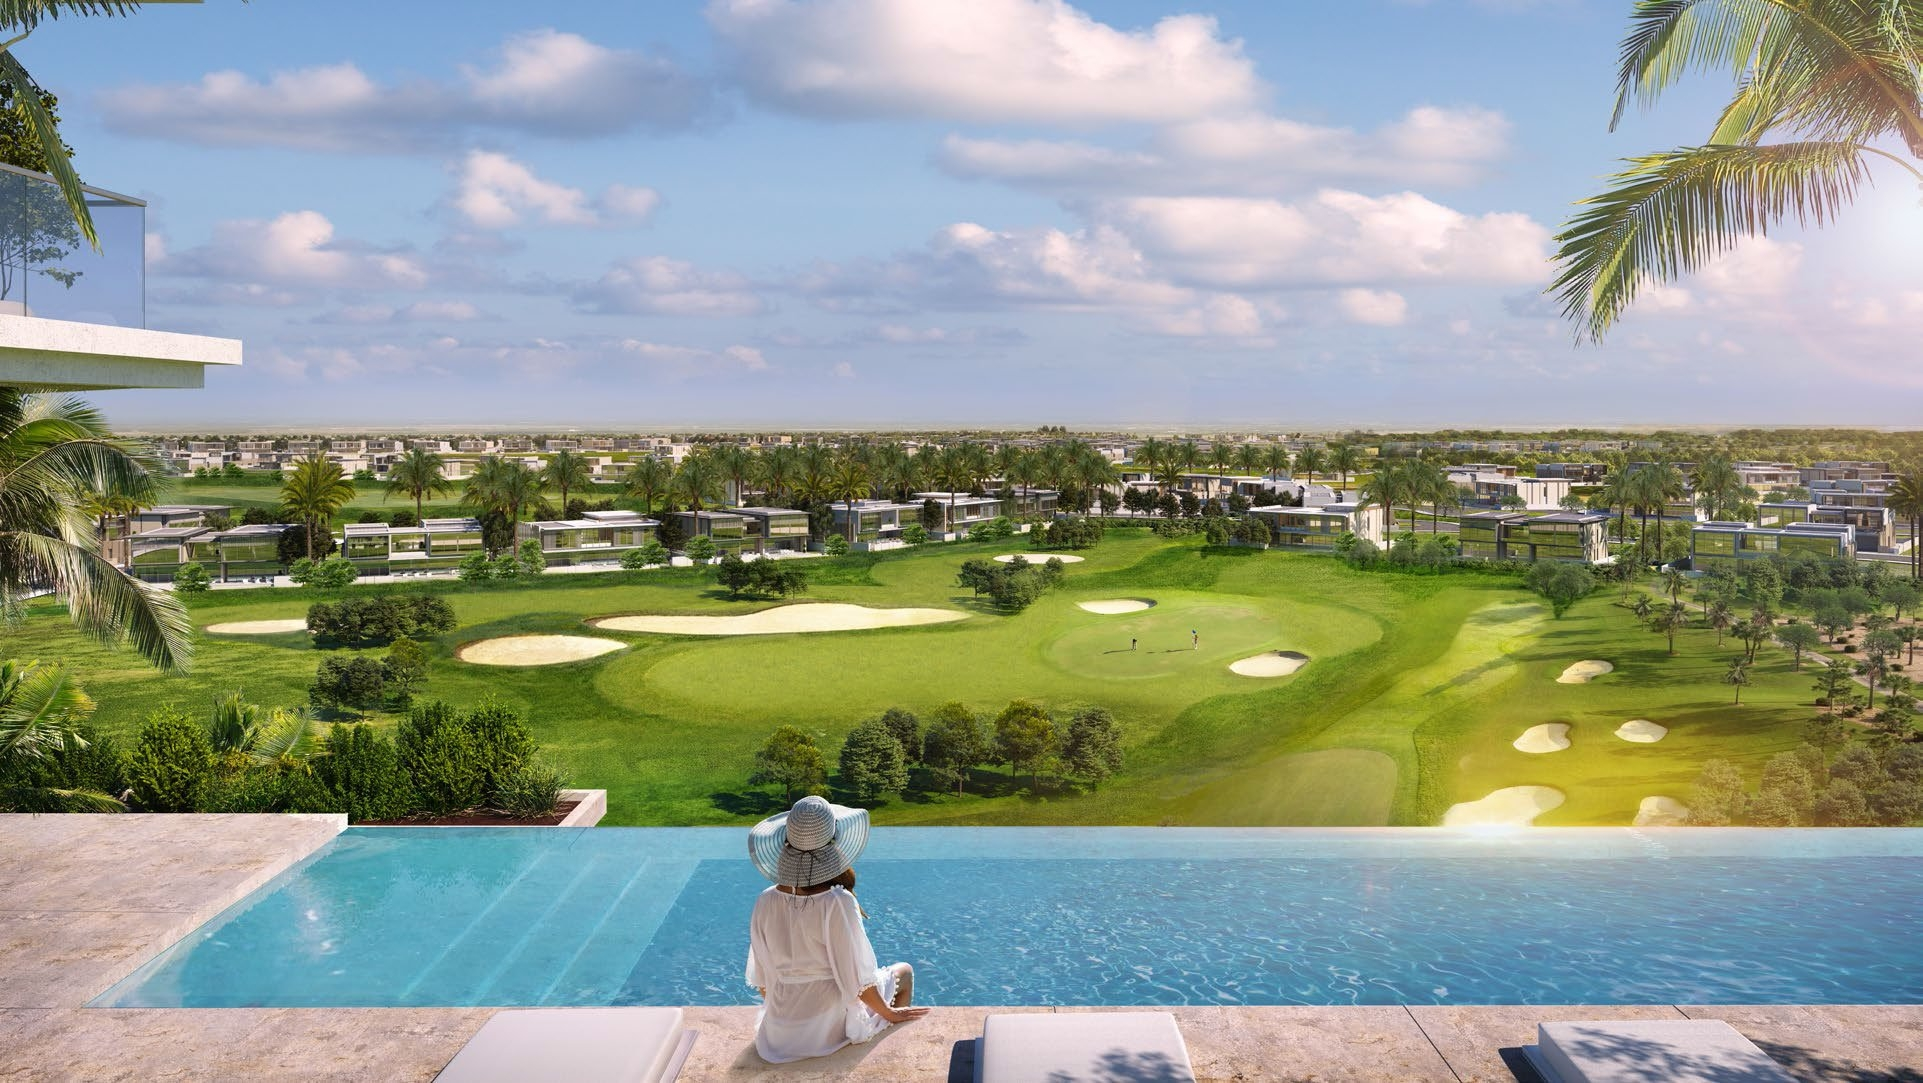 EMAAR  Pay in 4 years  Golf course apartments